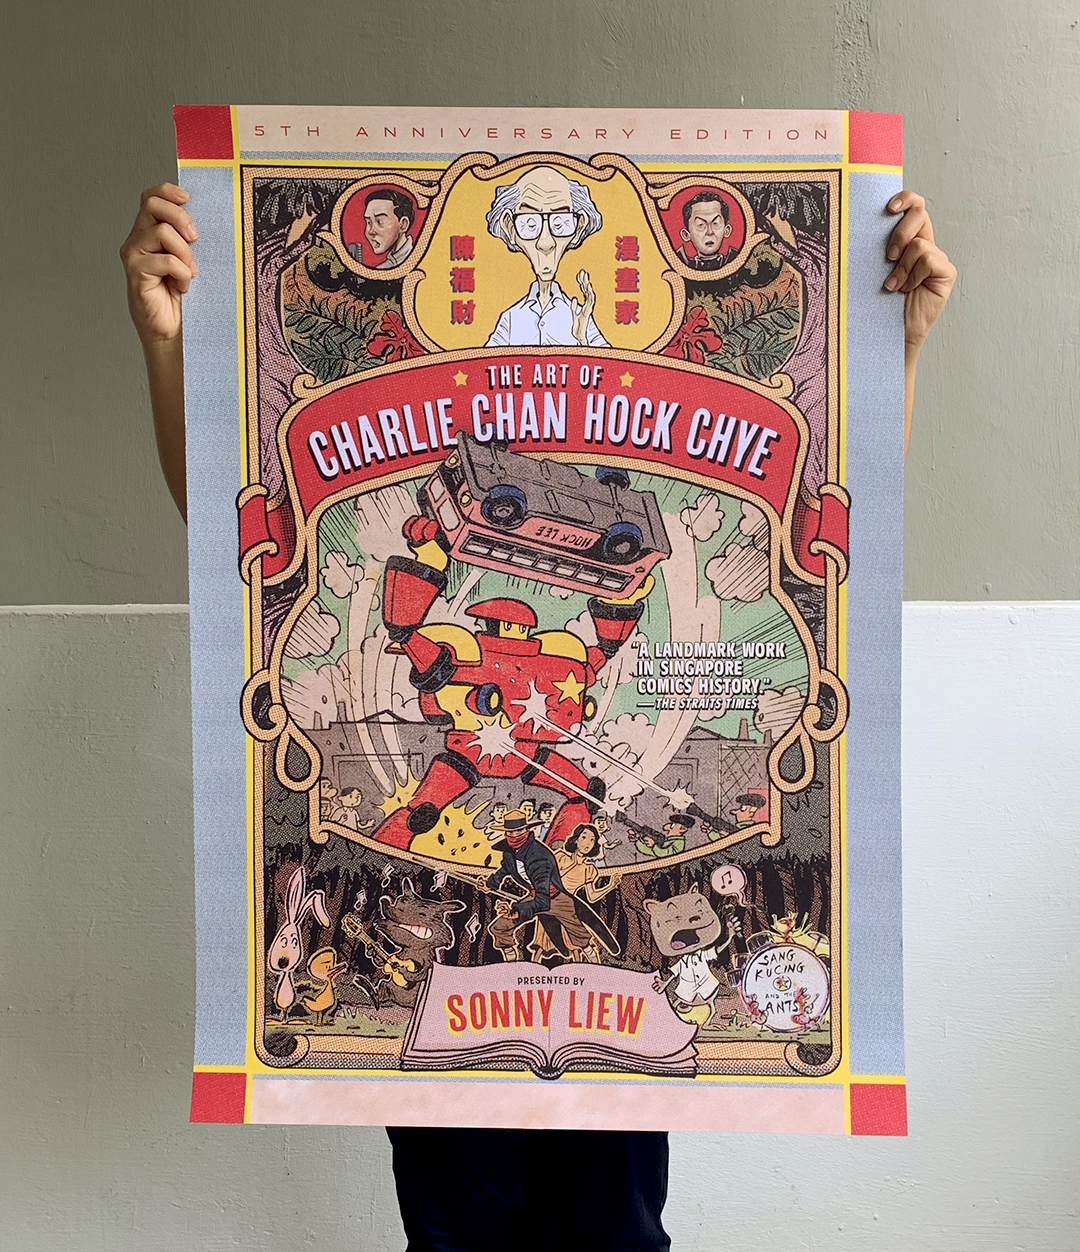 Poster of The Art of Charlie Chan Hock Chye (5th Anniversary Edition)